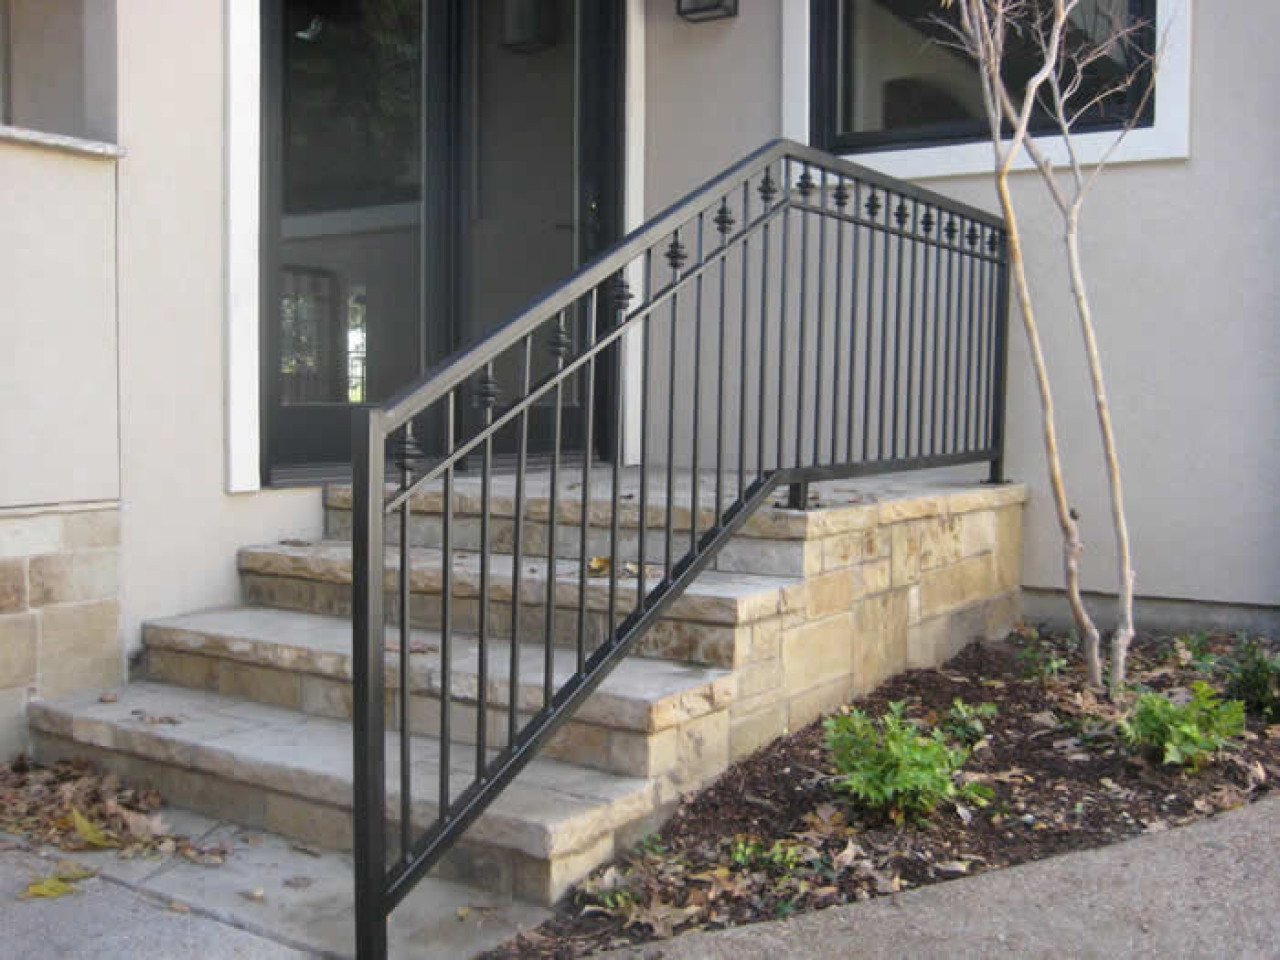 Best ideas about Outdoor Metal Stair Railing . Save or Pin Exterior Stair Railings Porch Ideas Now.